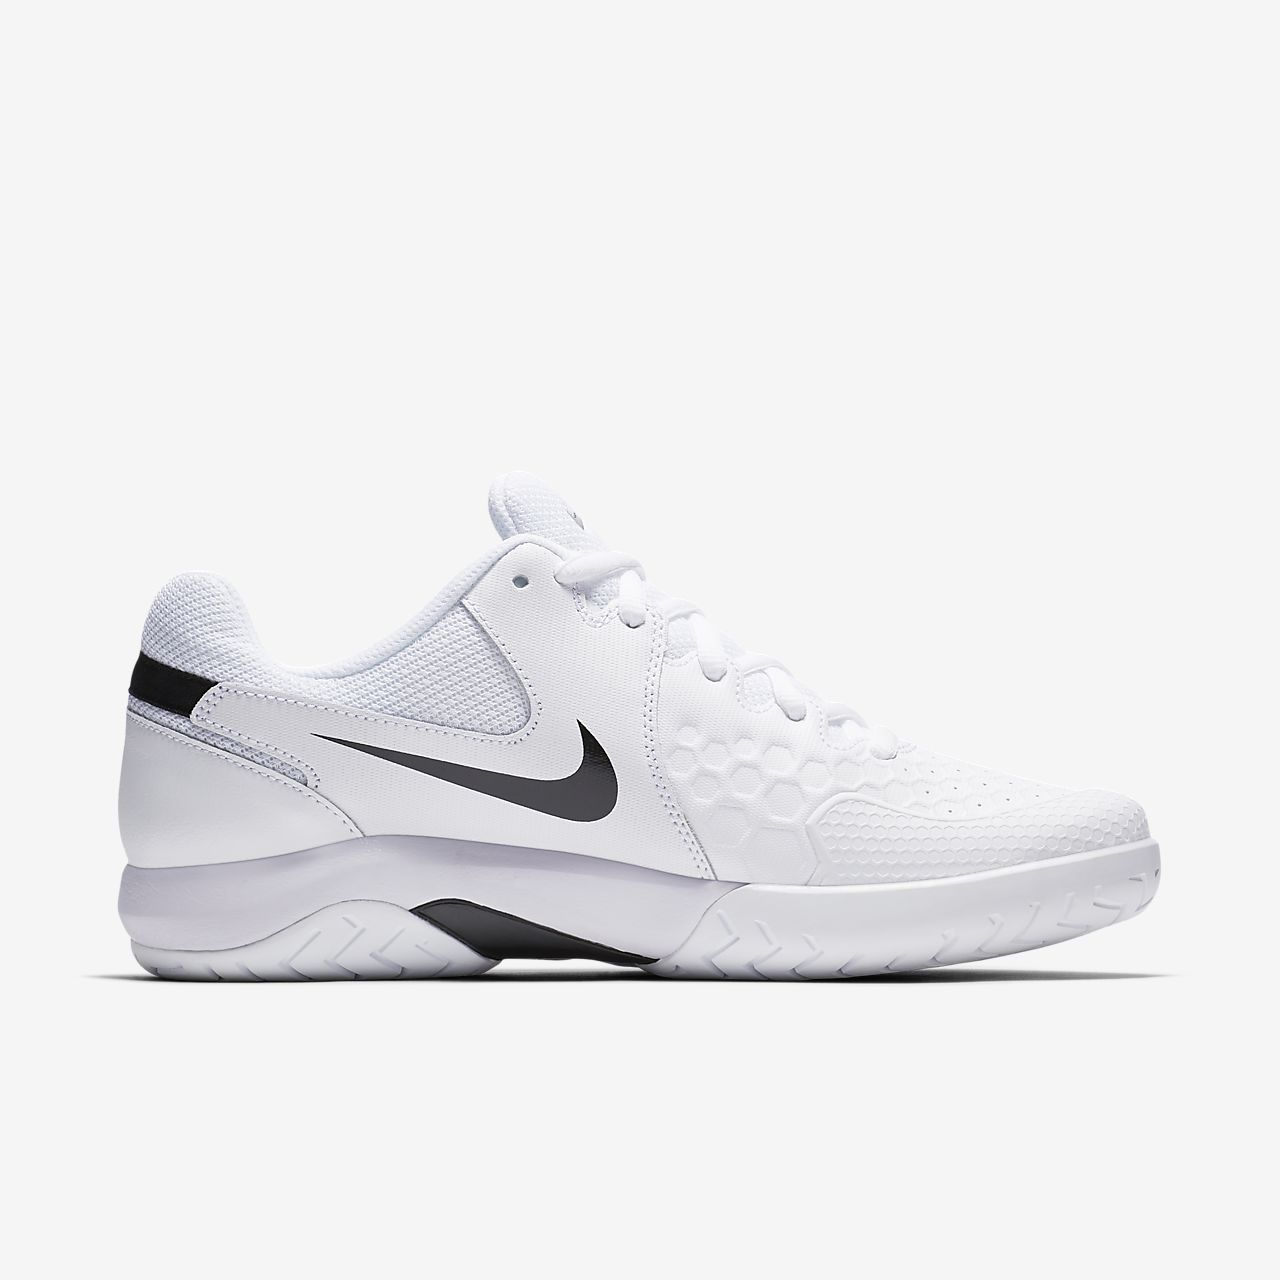 ac016840794 nikecourt-air-zoom-resistance-hard-court-tennis-shoe-rJTGAGEP.jpg